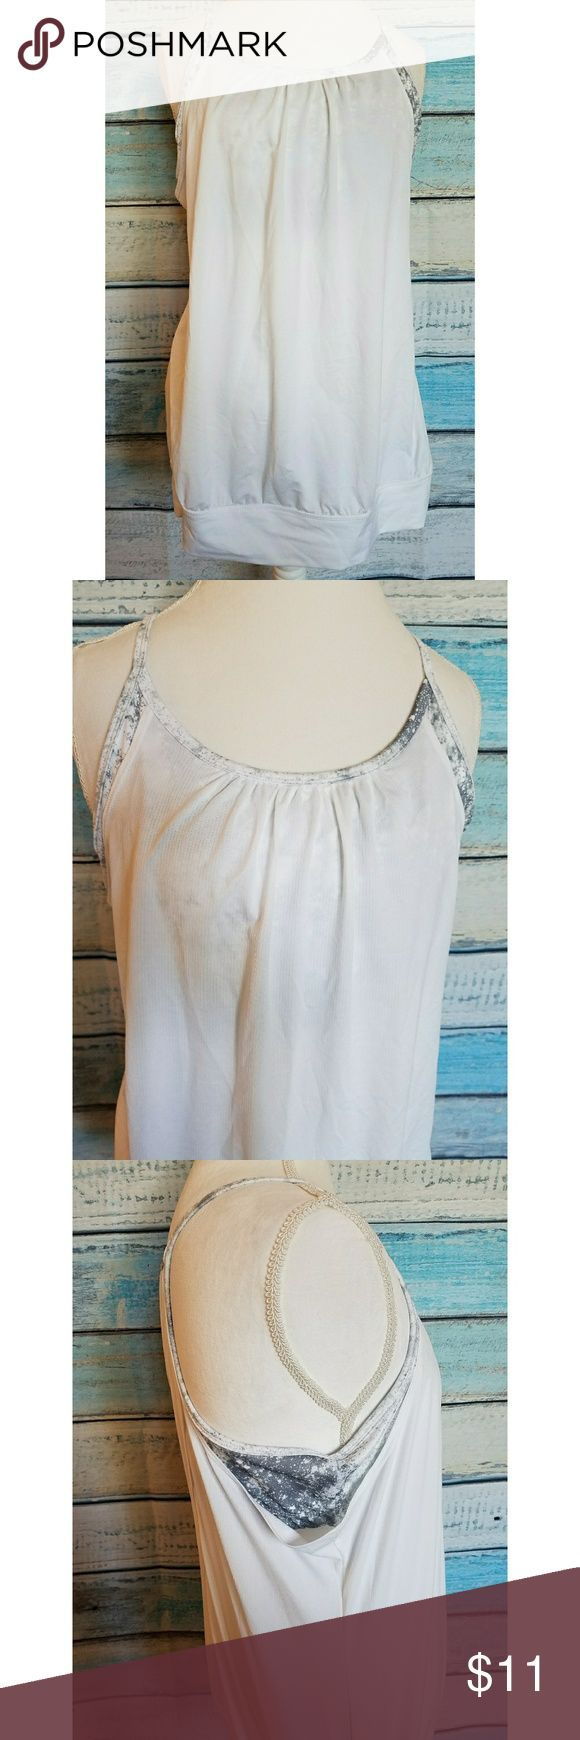 Old Navy Active White Strappy Tank Top Old Navy Active tank top in size XL. Built in bra with gray and white pattern. Back has opening to show sports bra and breathe! EUC! Old Navy Tops Tank Tops